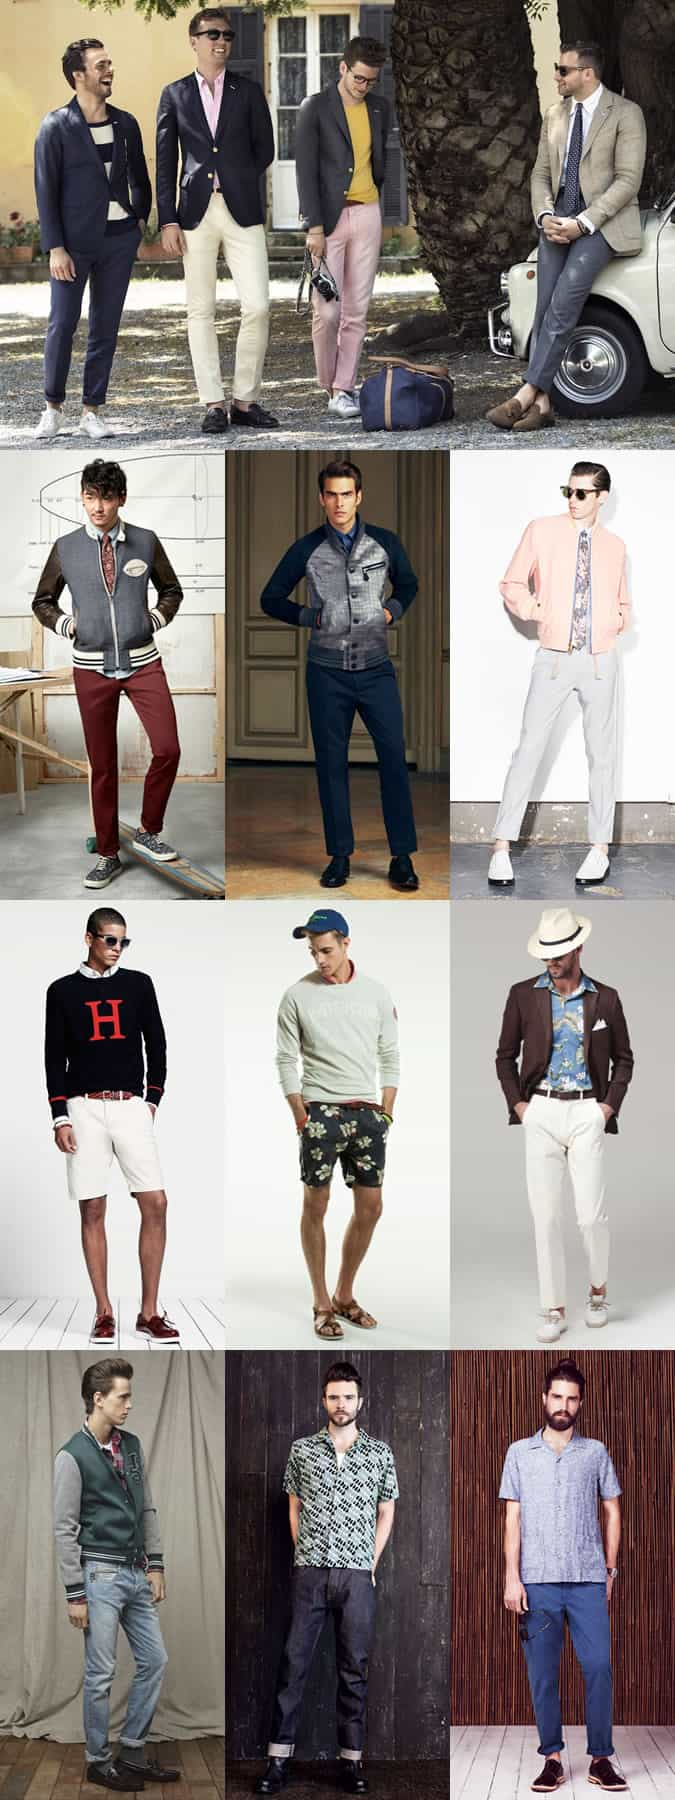 Men's Americana-Inspired Outfit Inspiration Lookbook